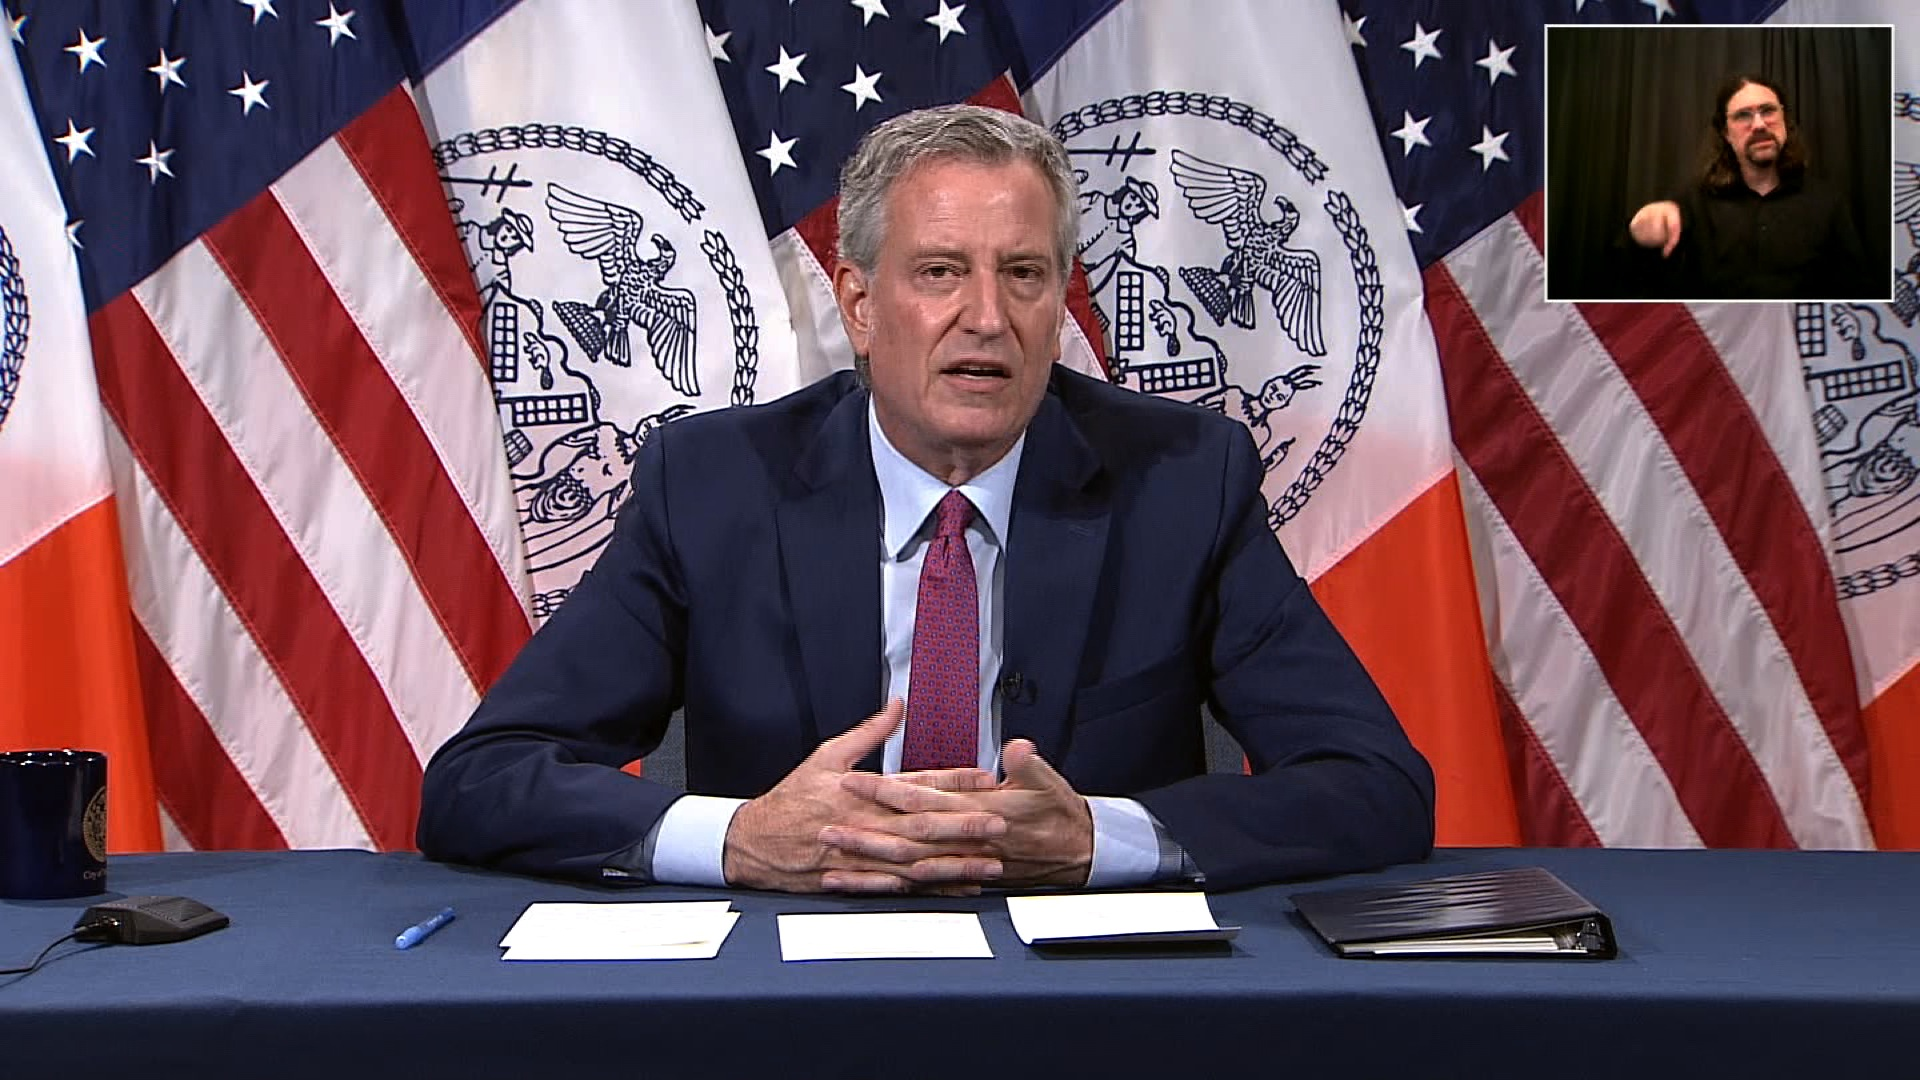 New York Mayor Bill de Blasio speaks during a press conference in New York on June 16.